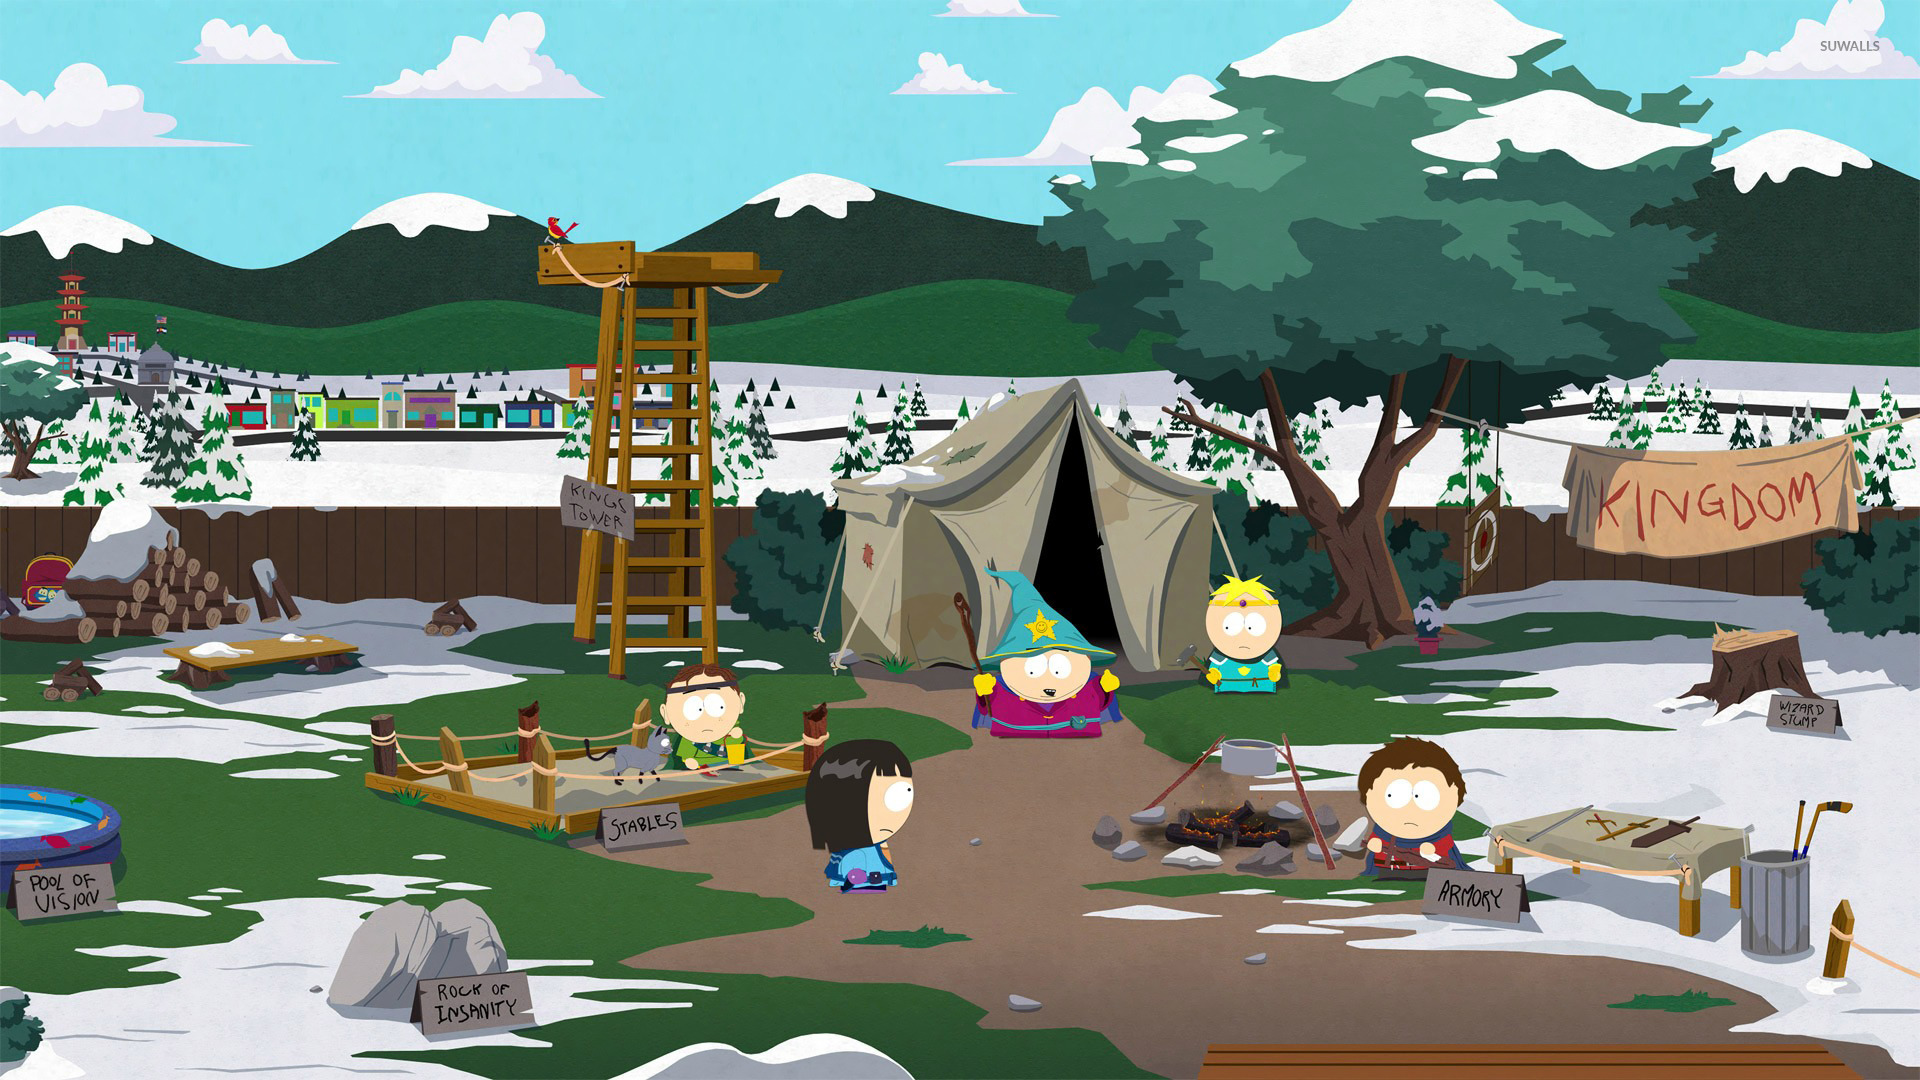 south park the stick of truth 4 wallpaper game